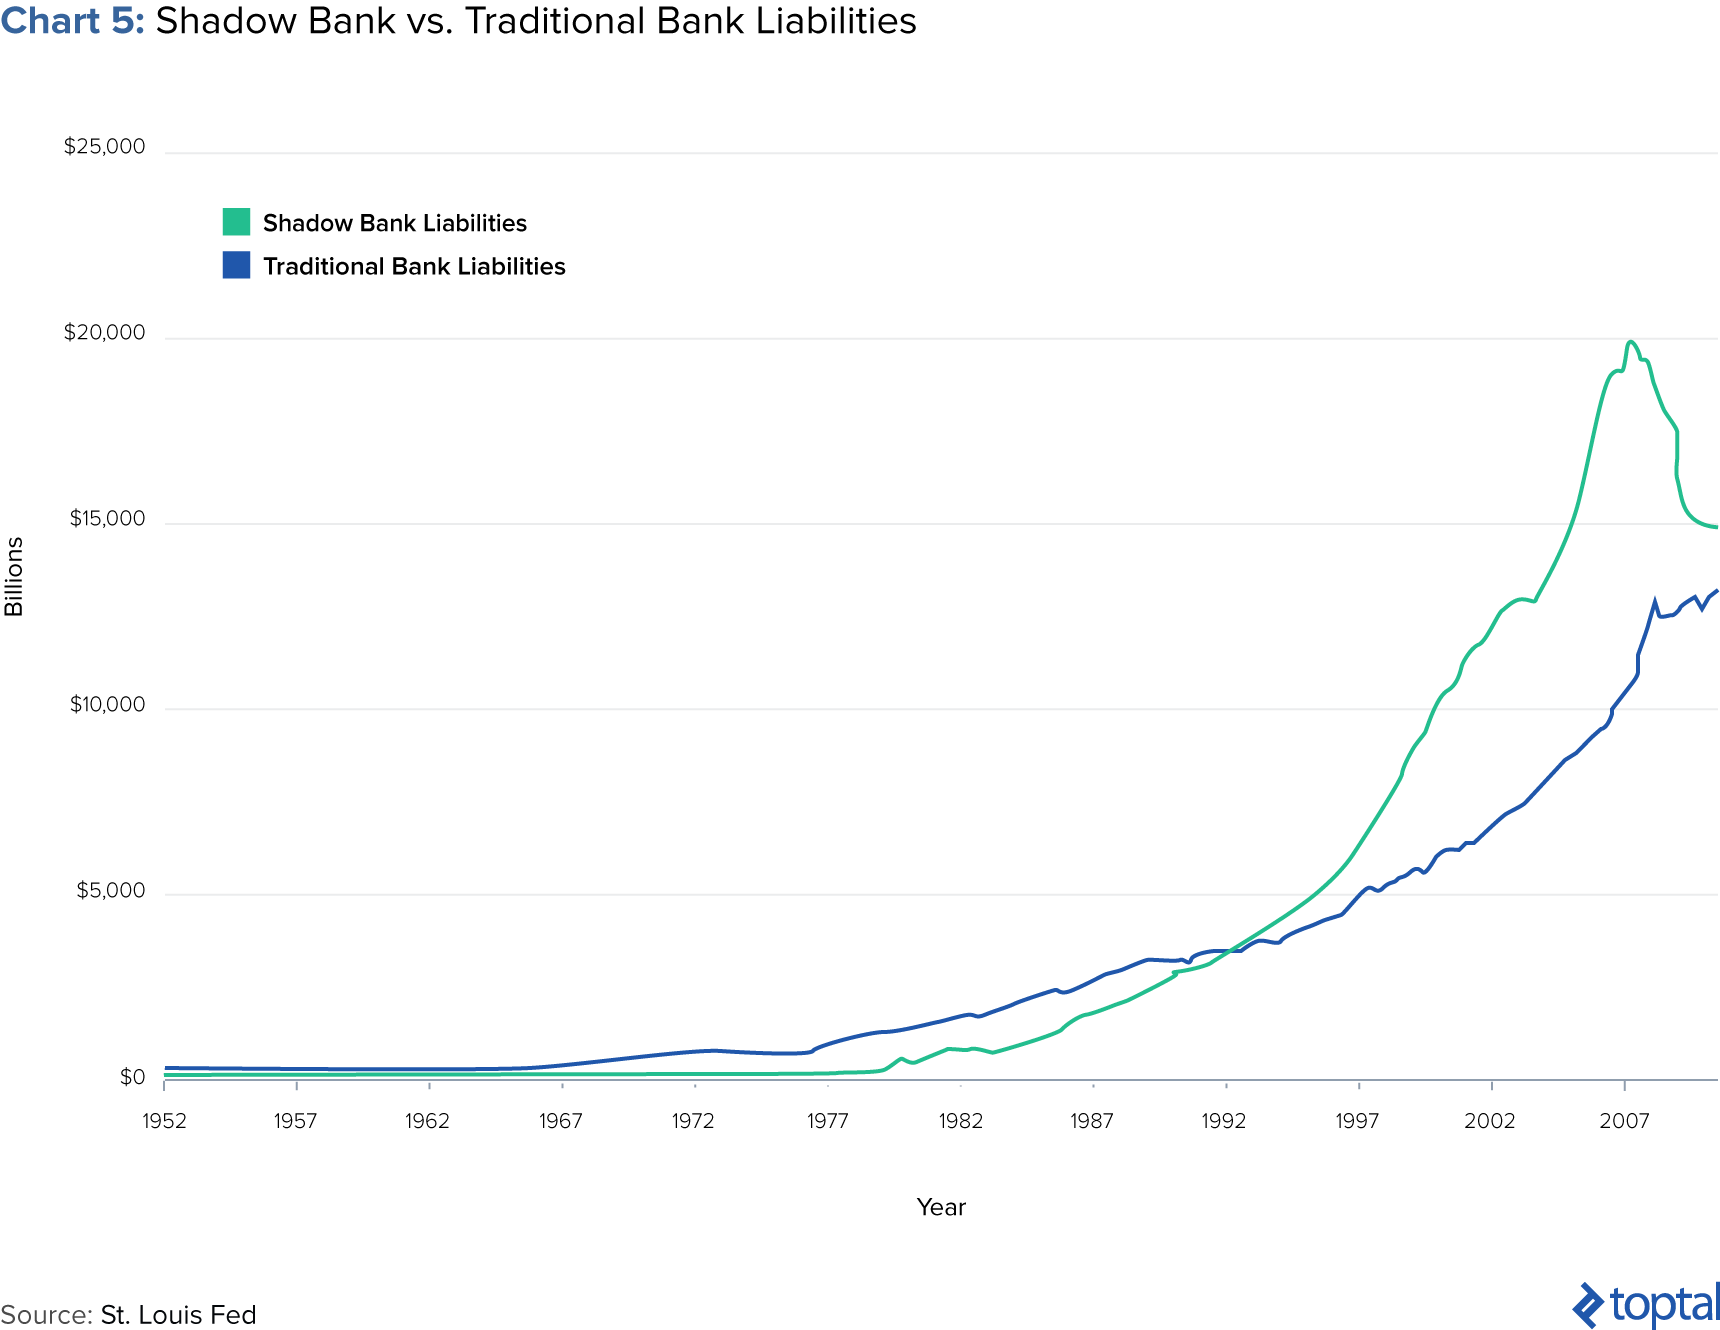 Chart 5: Shadow Bank vs. Traditional Bank Liabilities